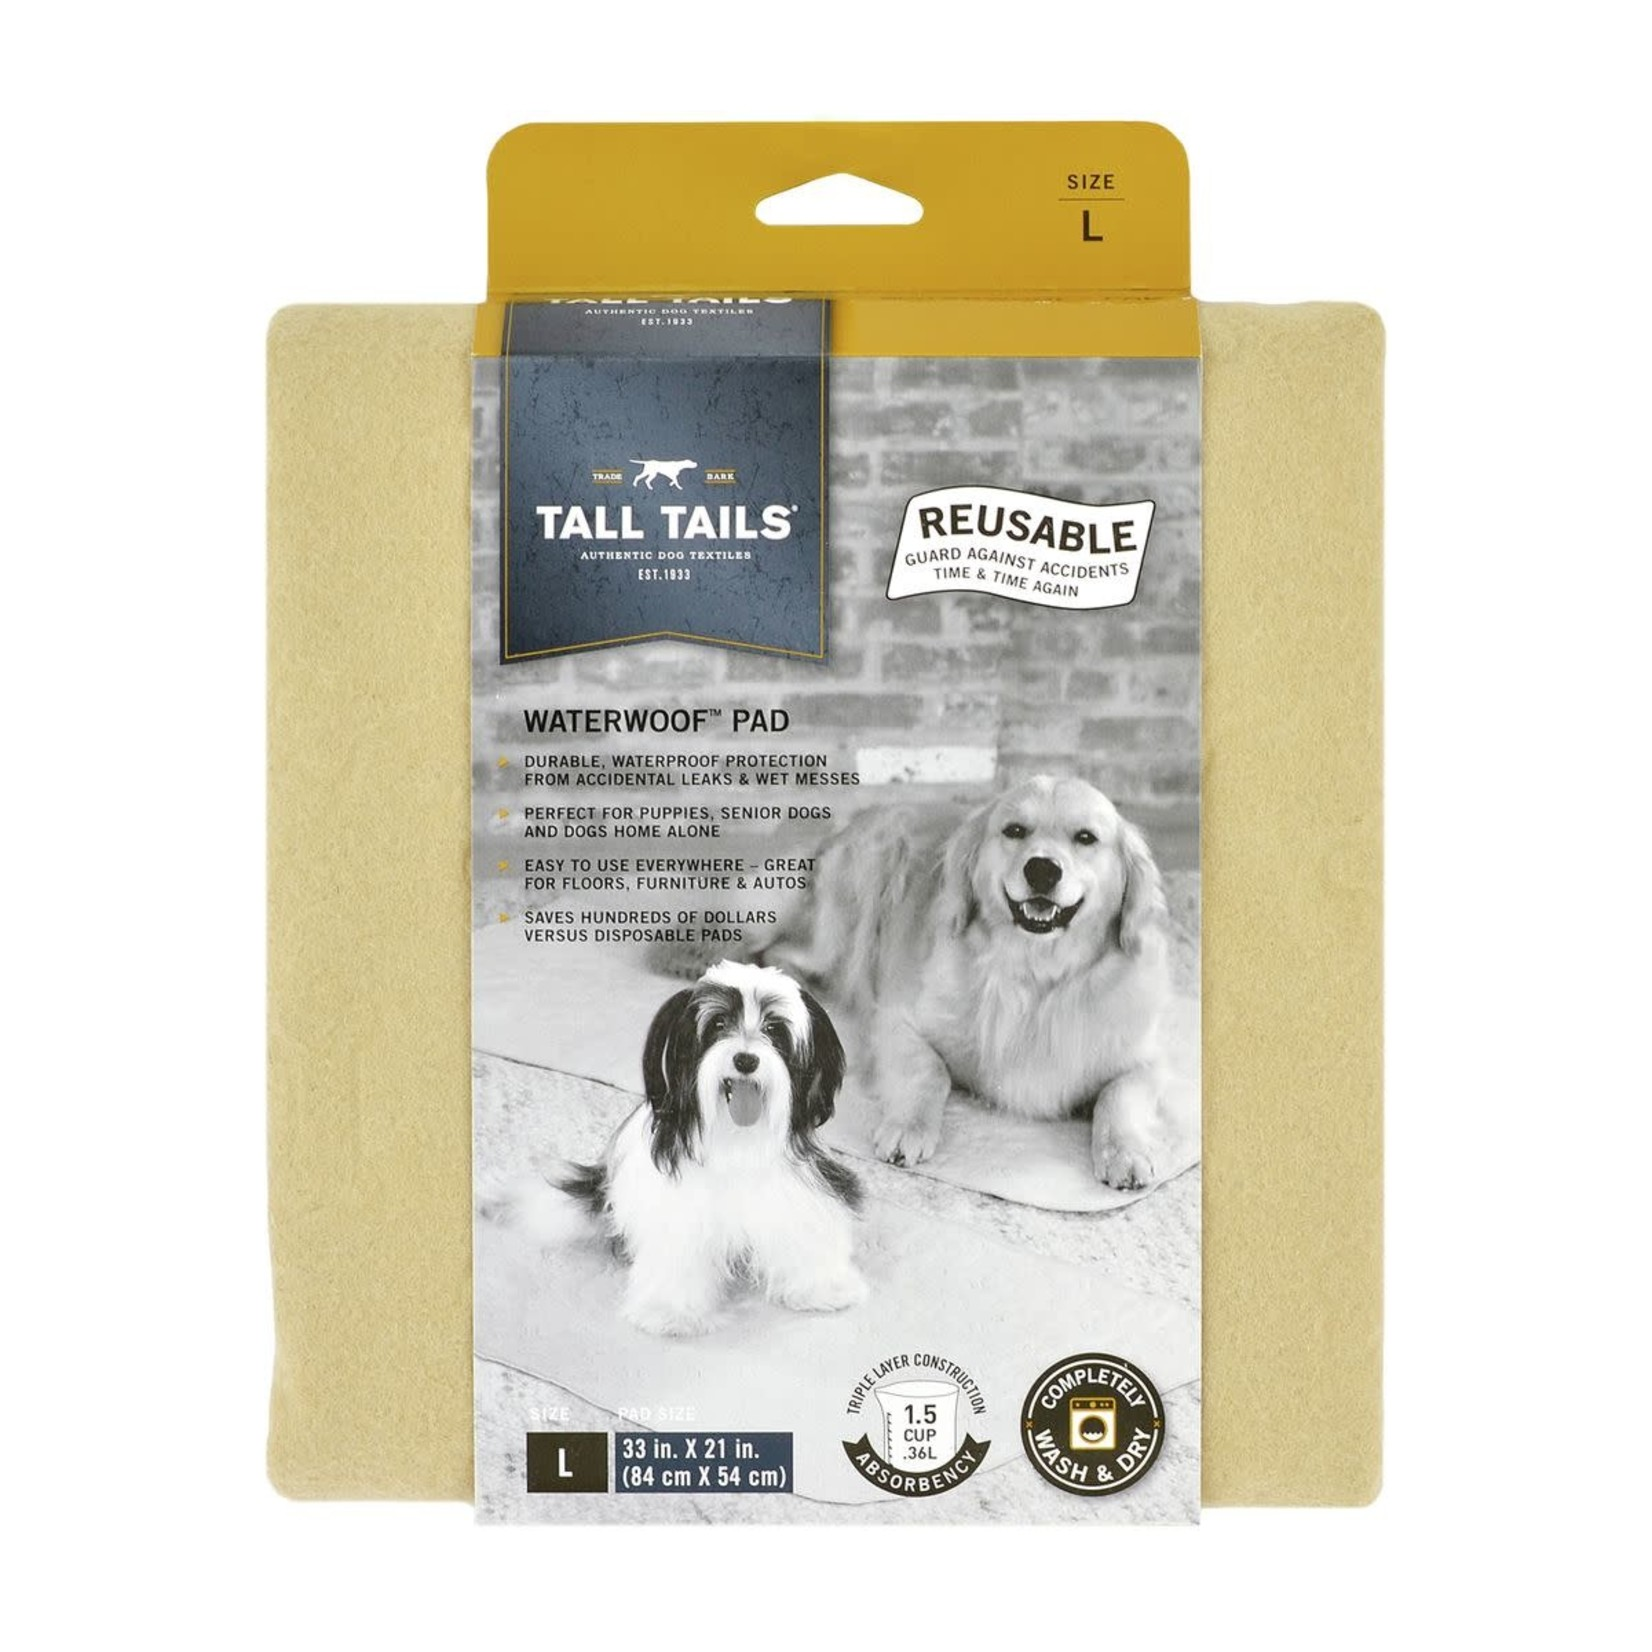 Tall Tails Tall Tails Waterproof Pad Large